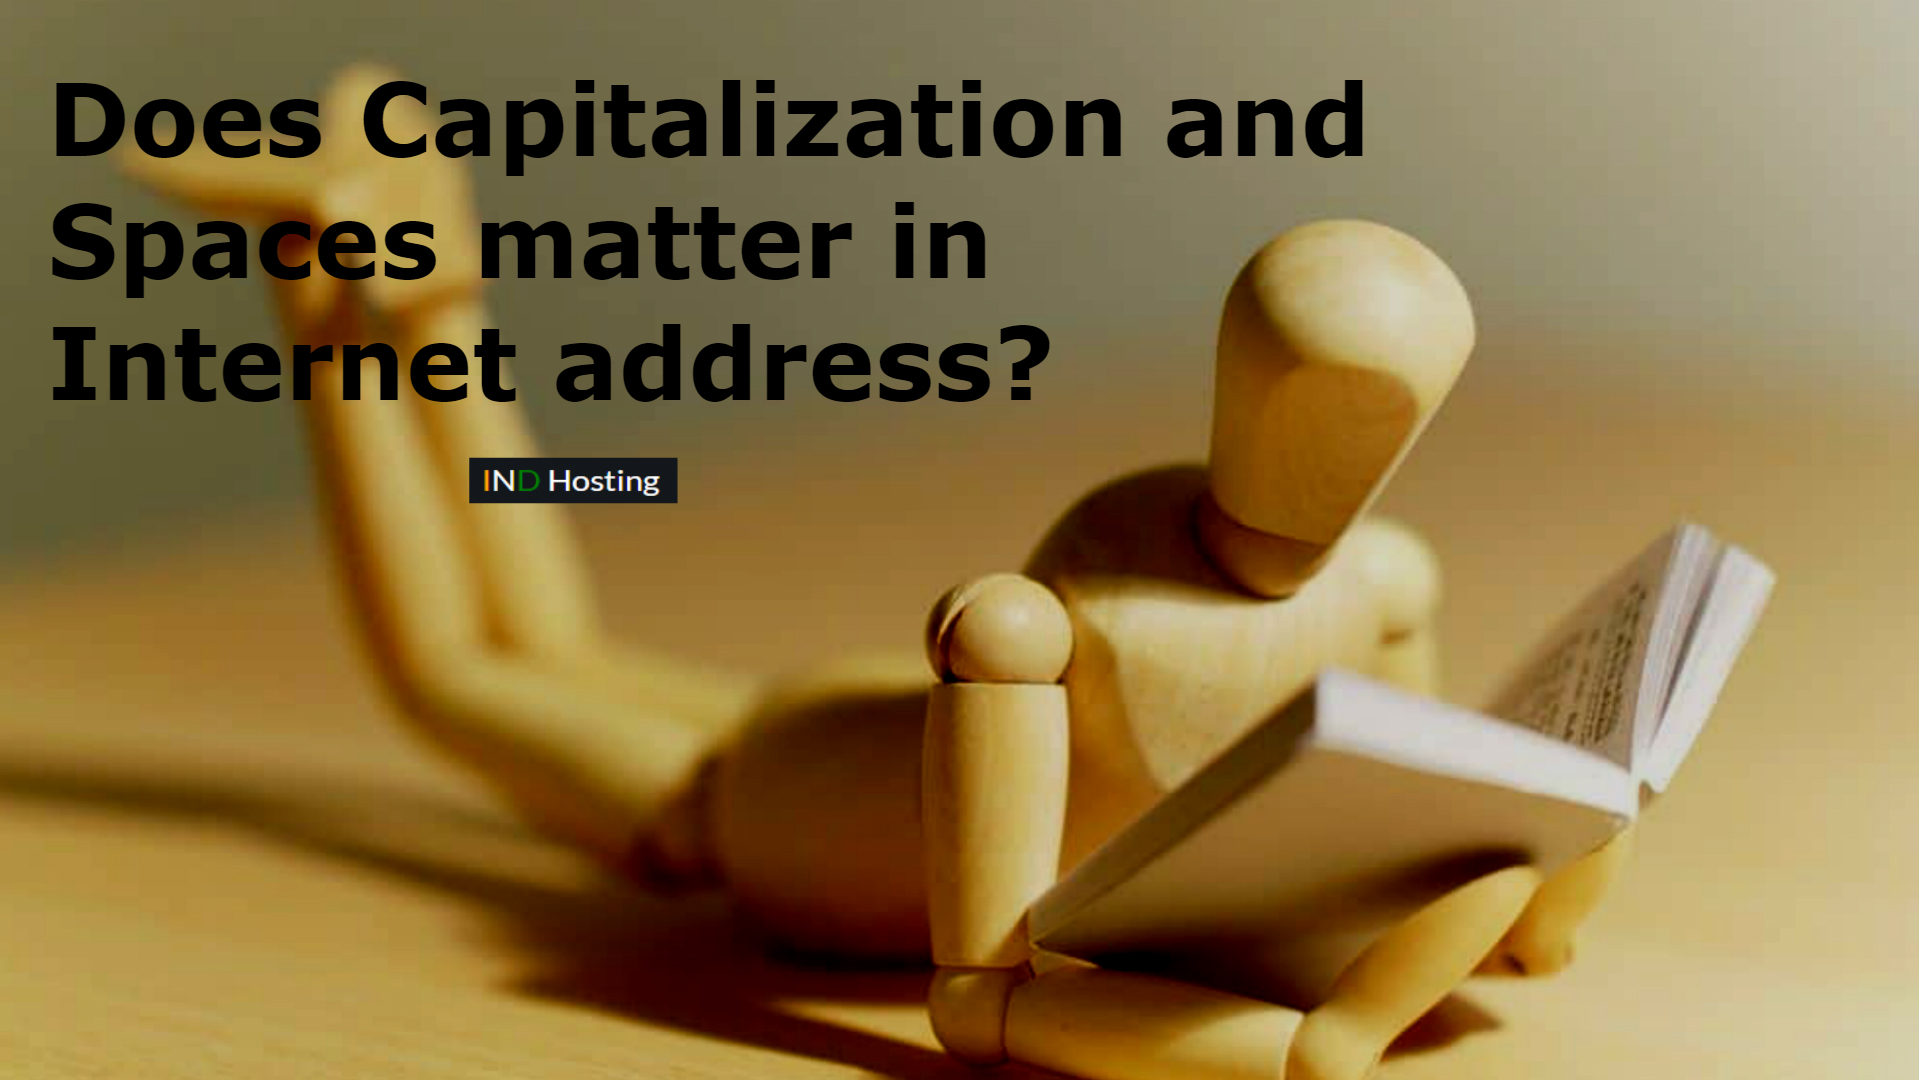 Does capitalization and spaces matter in Internet addresses?